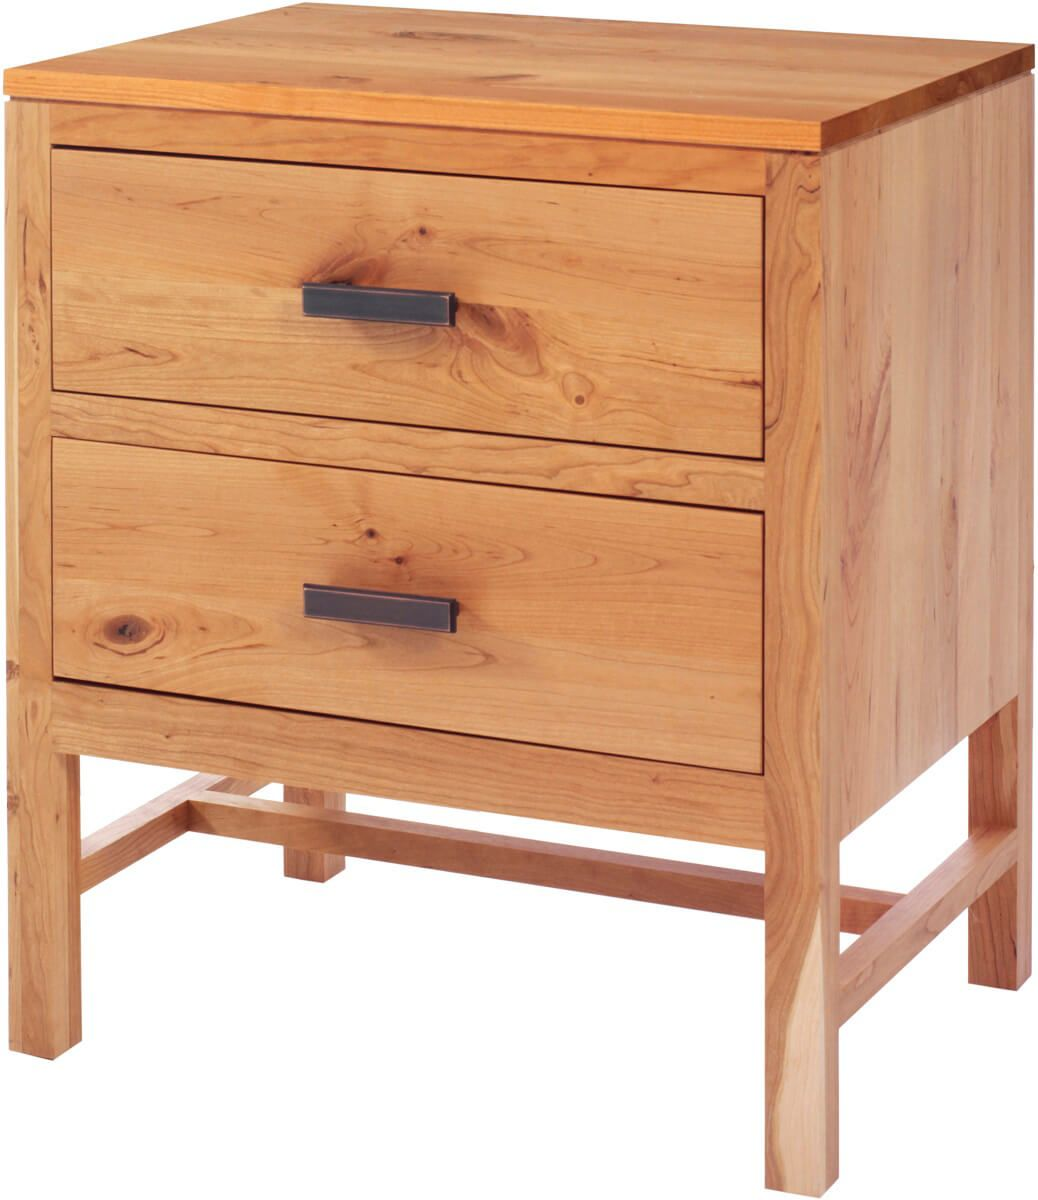 New Lebanon 2-Drawer Nightstand